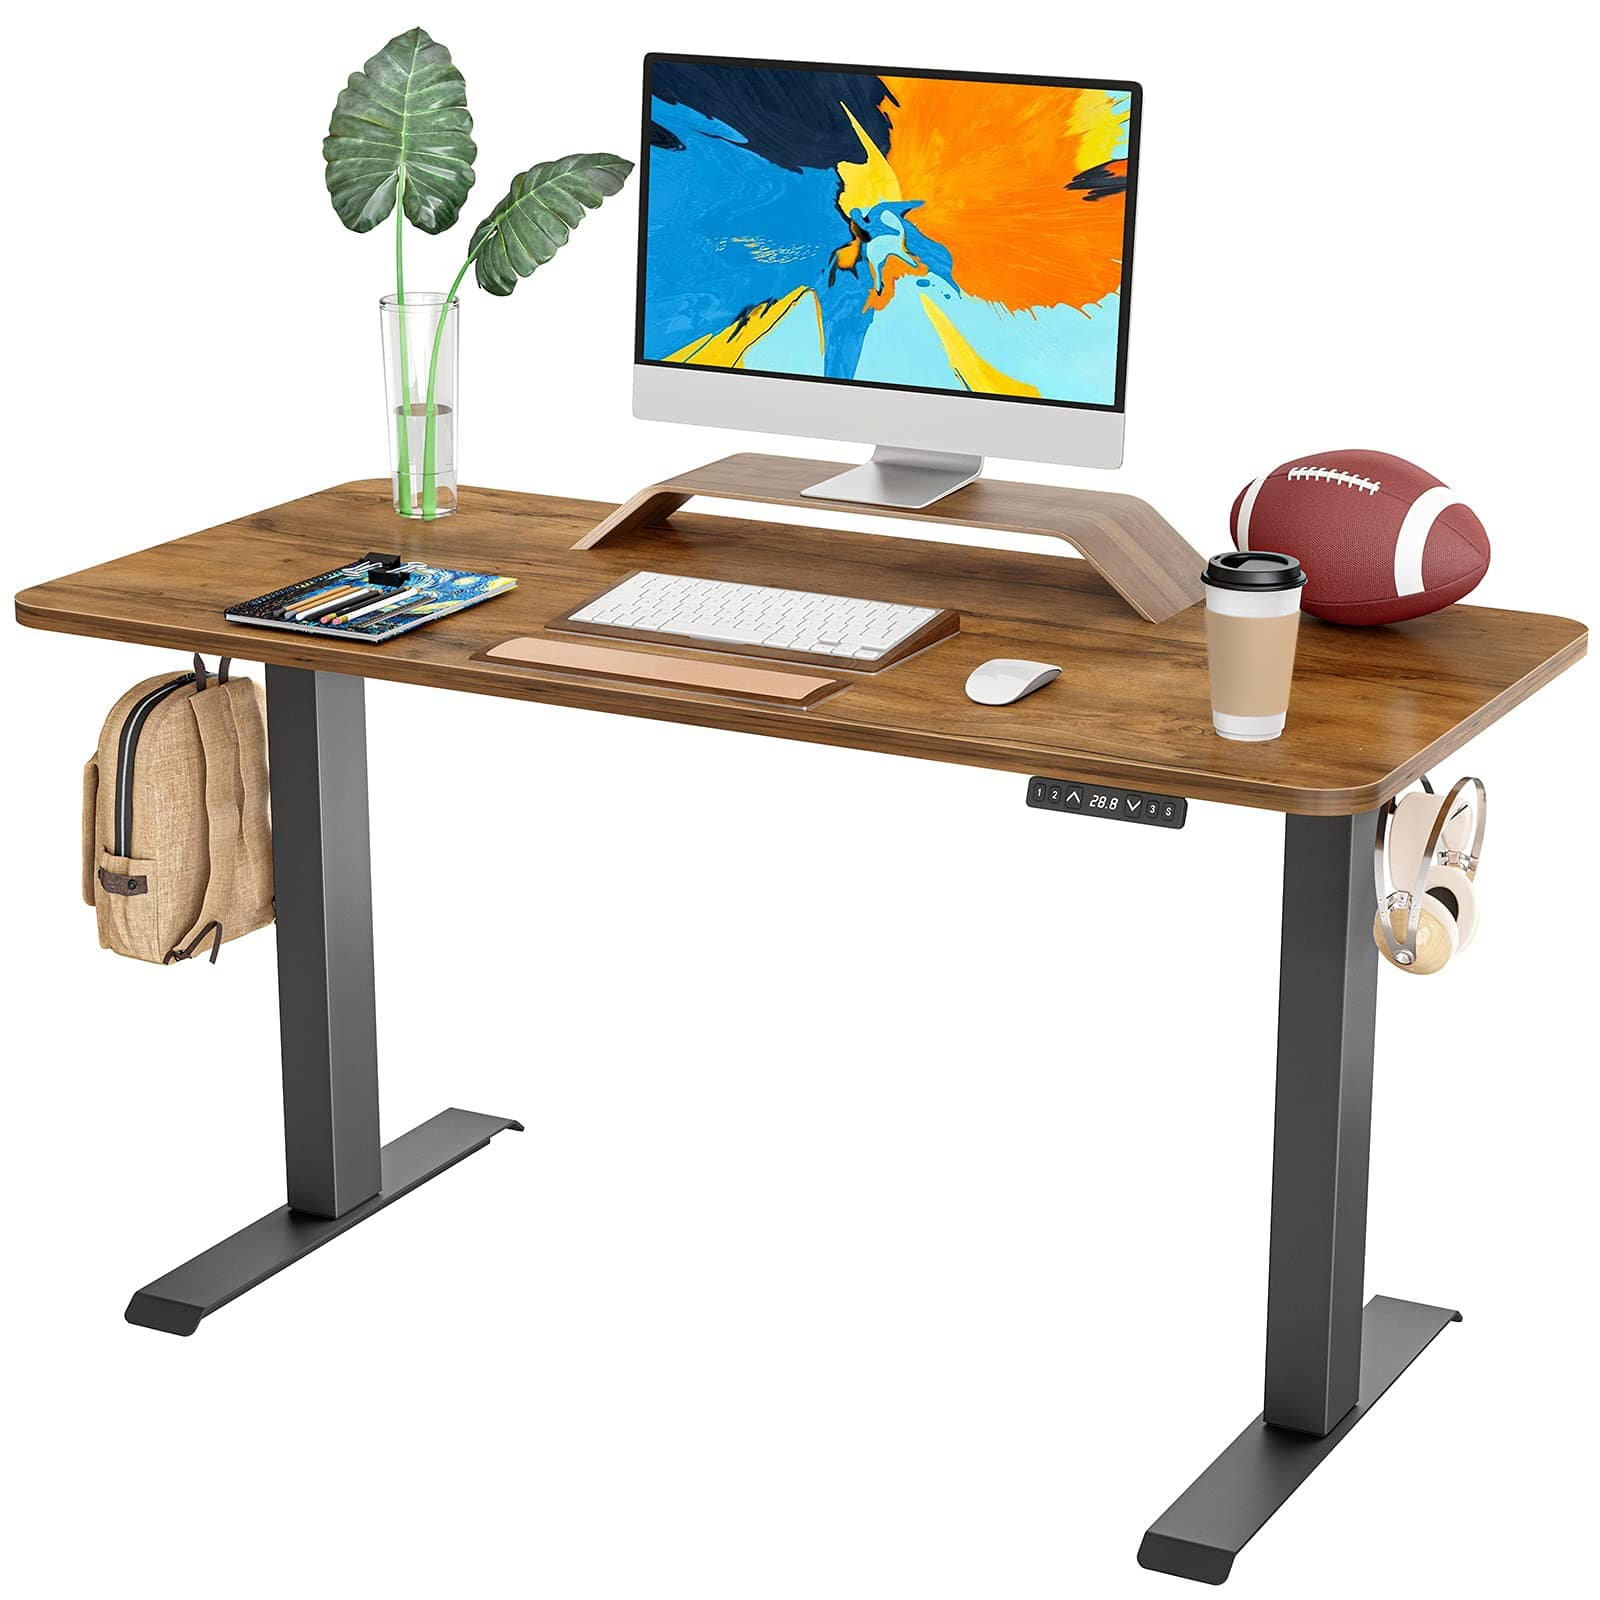 FAMISKY Dual Motor Adjustable Height Electric Standing Desk $199.99 at Amazon